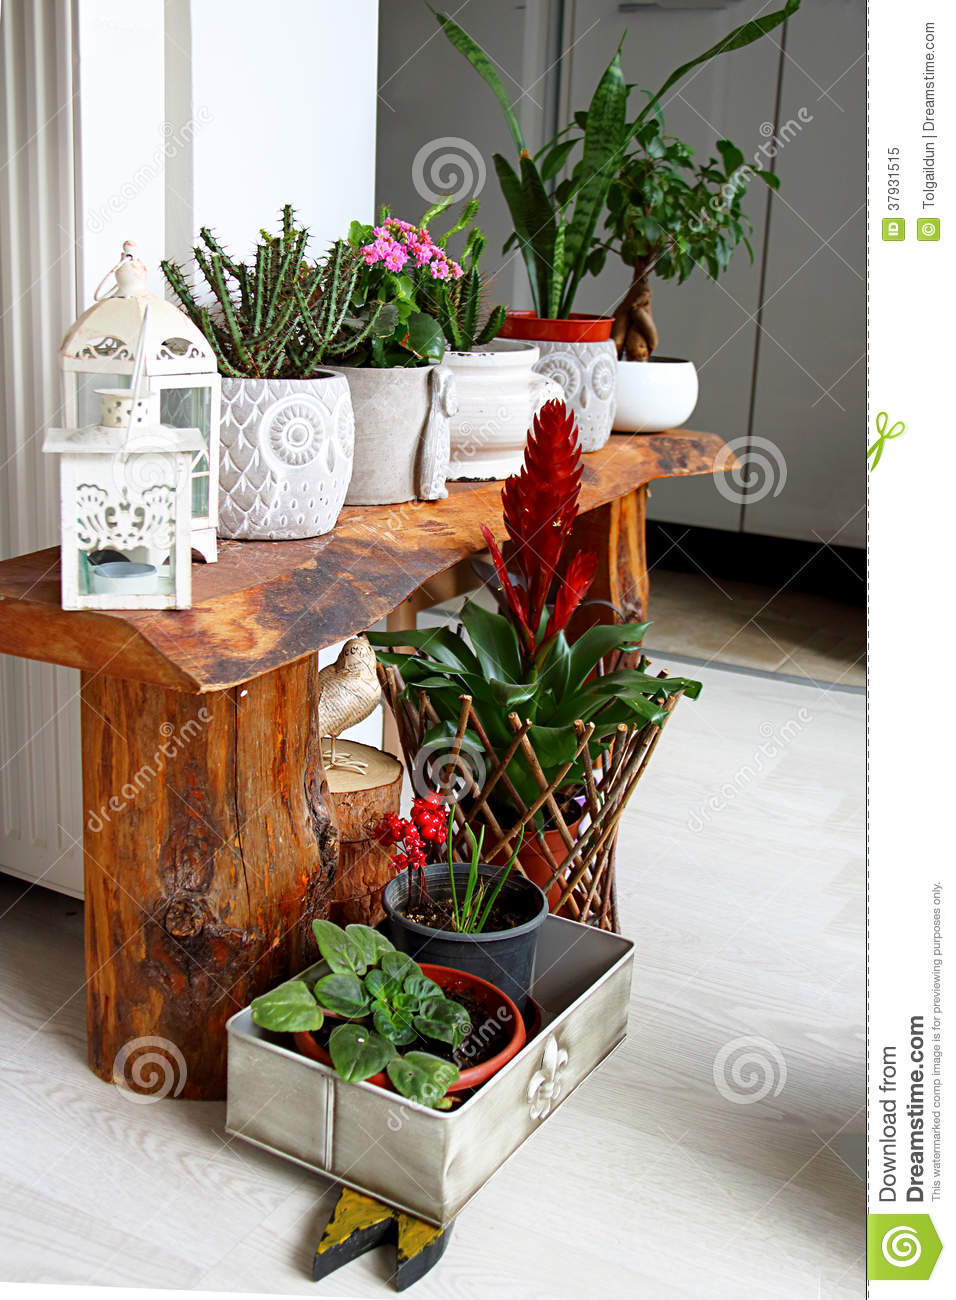 Indoor Botanic Garden For Room Decoration